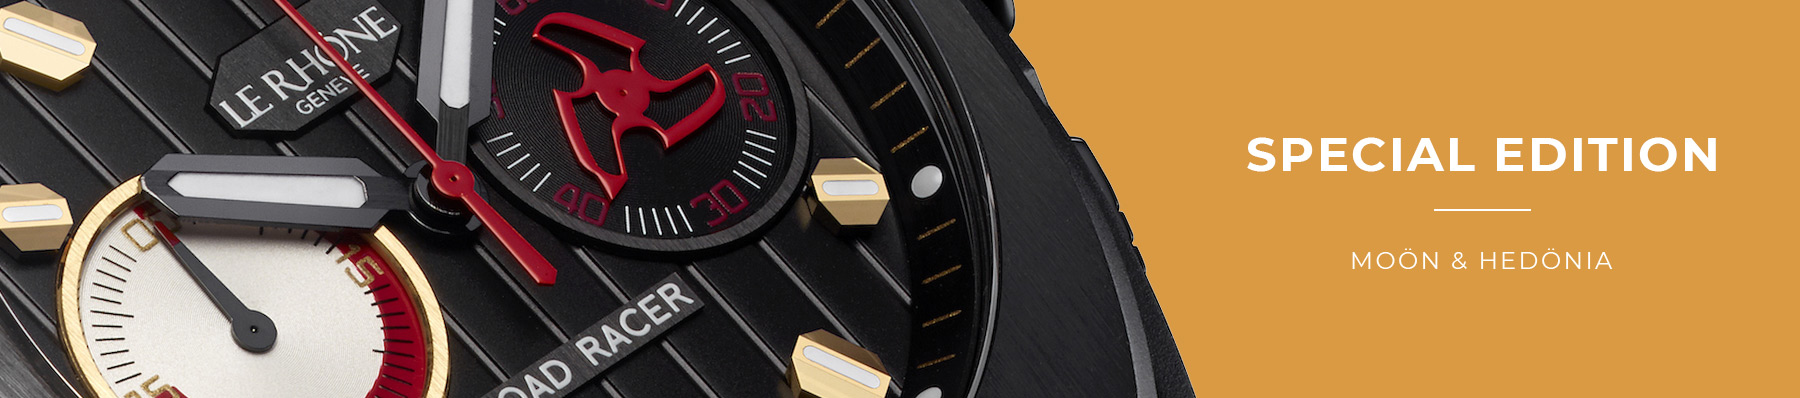 le-rhone-watch-limited-edition-ban-4